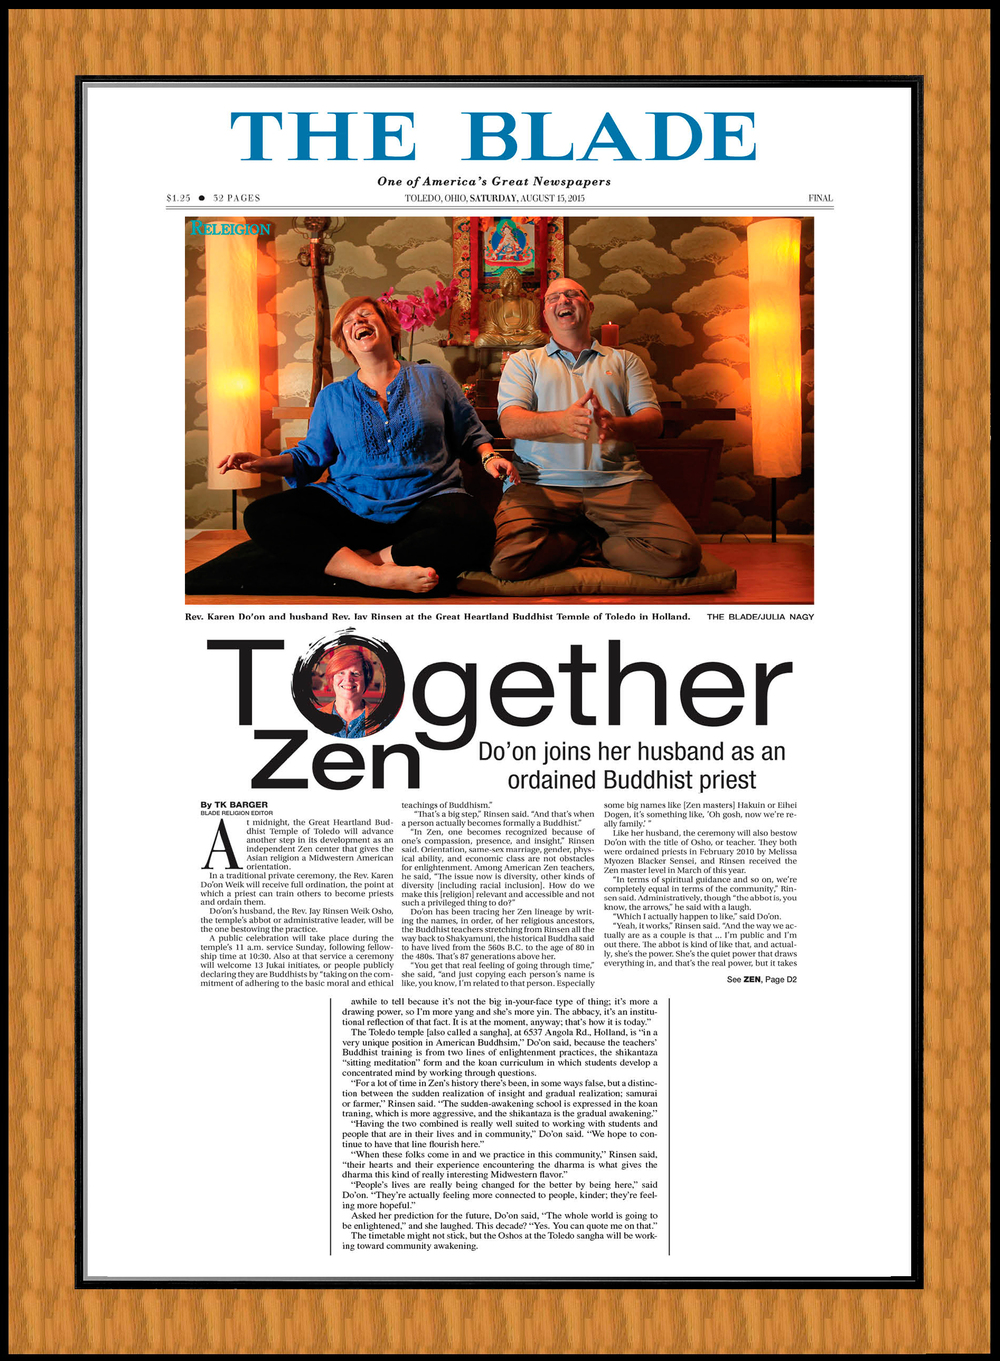 SAMPLE-2-Together-Zen,-S-PLAQUE.jpg